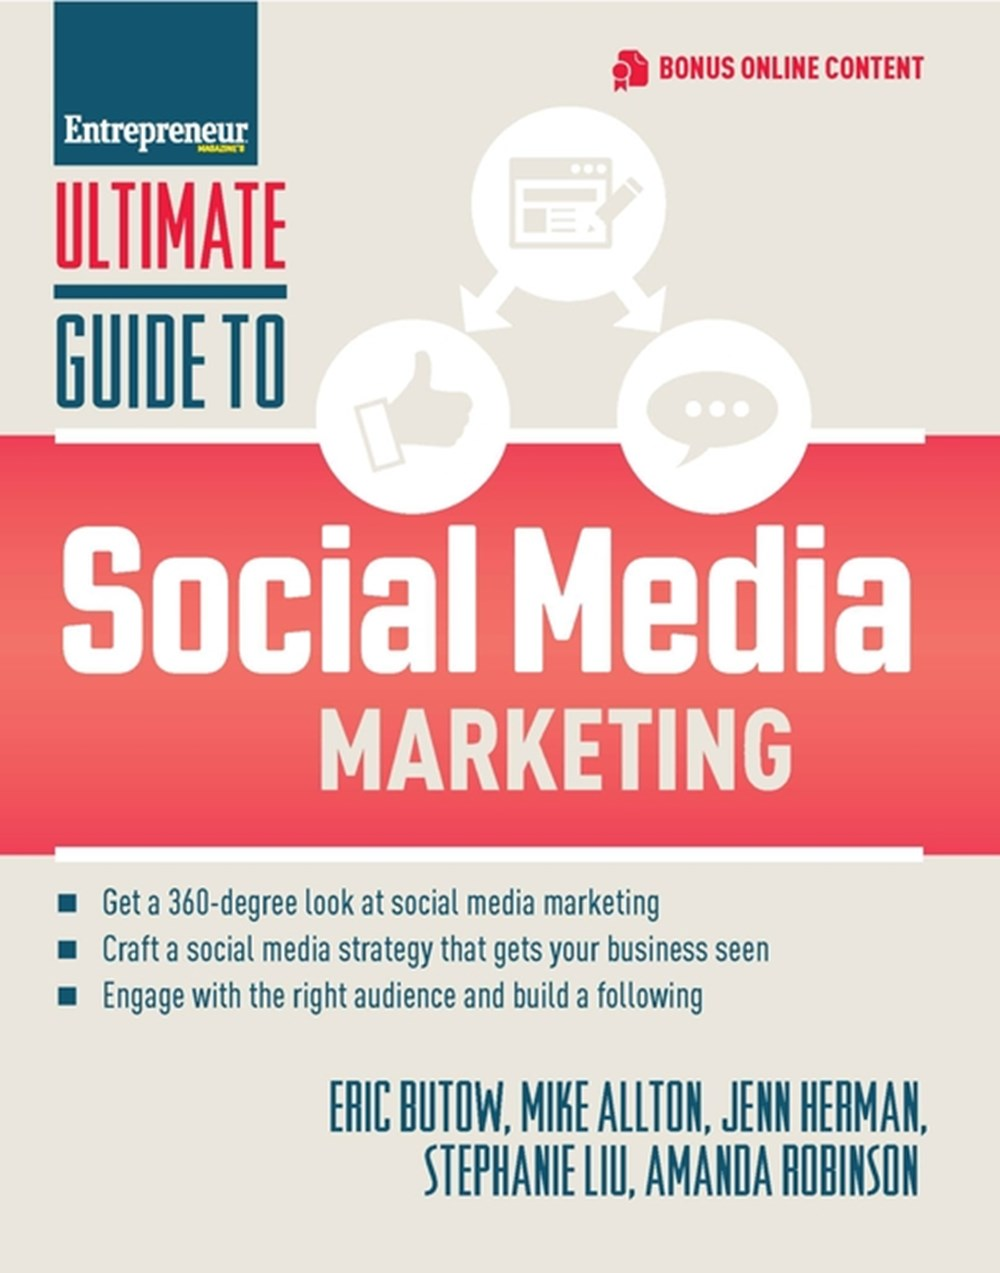 Ultimate Guide to Social Media Marketing